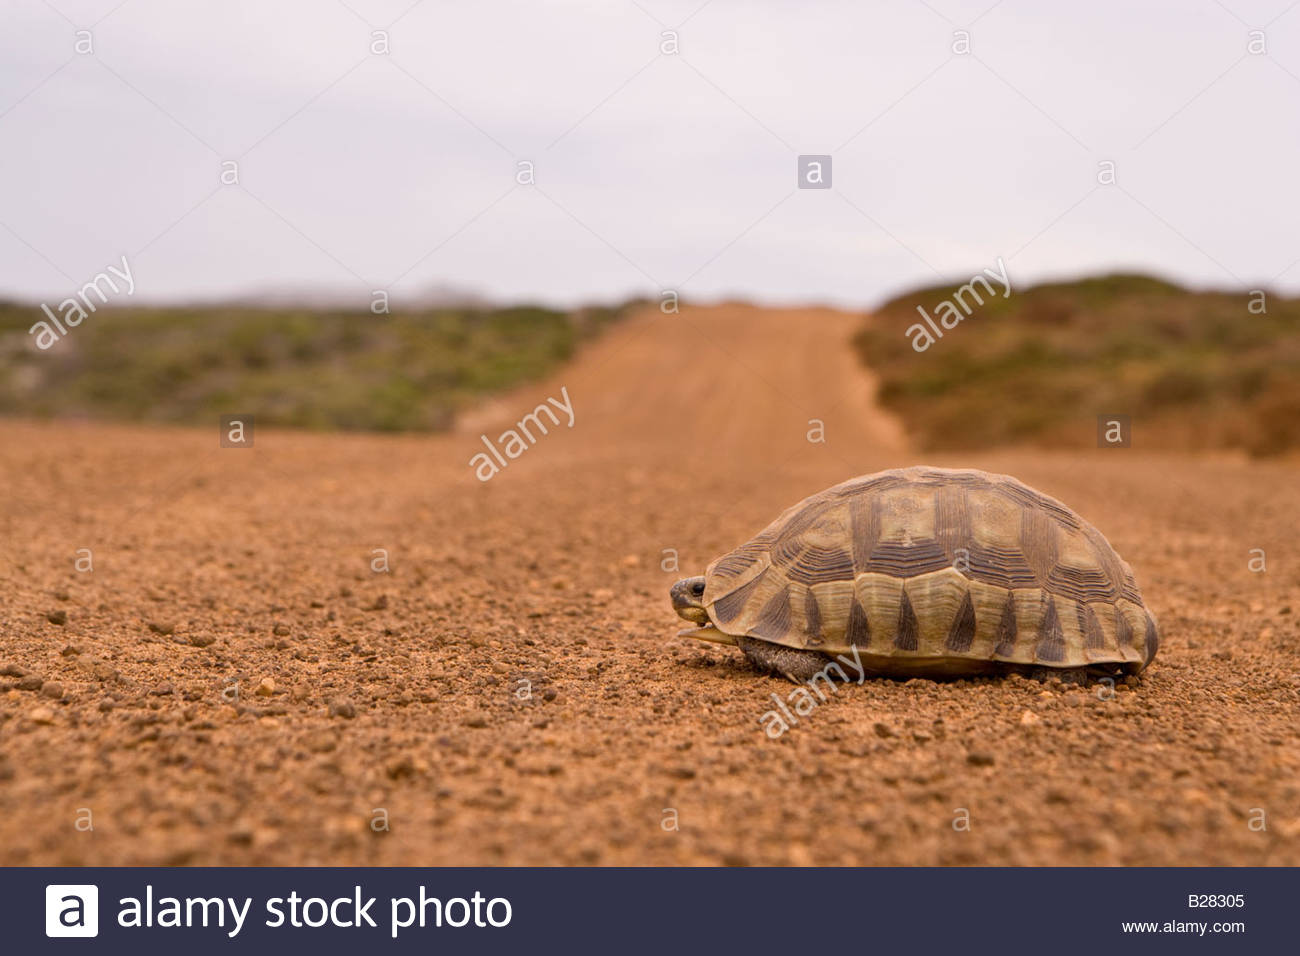 Tortoise on dirt road, ground view - Stock Image